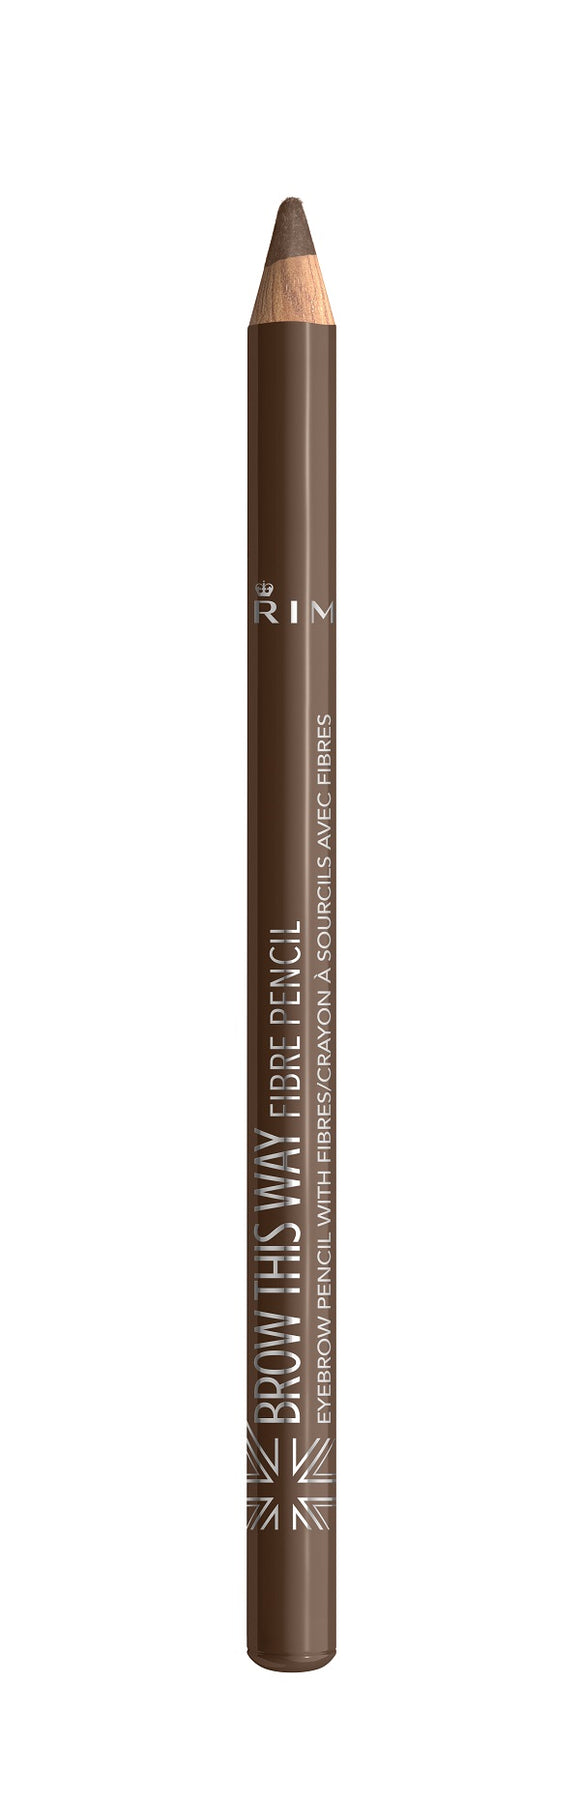 Rimmel Brow This Way Brow Pencil Fibre 002 Medium